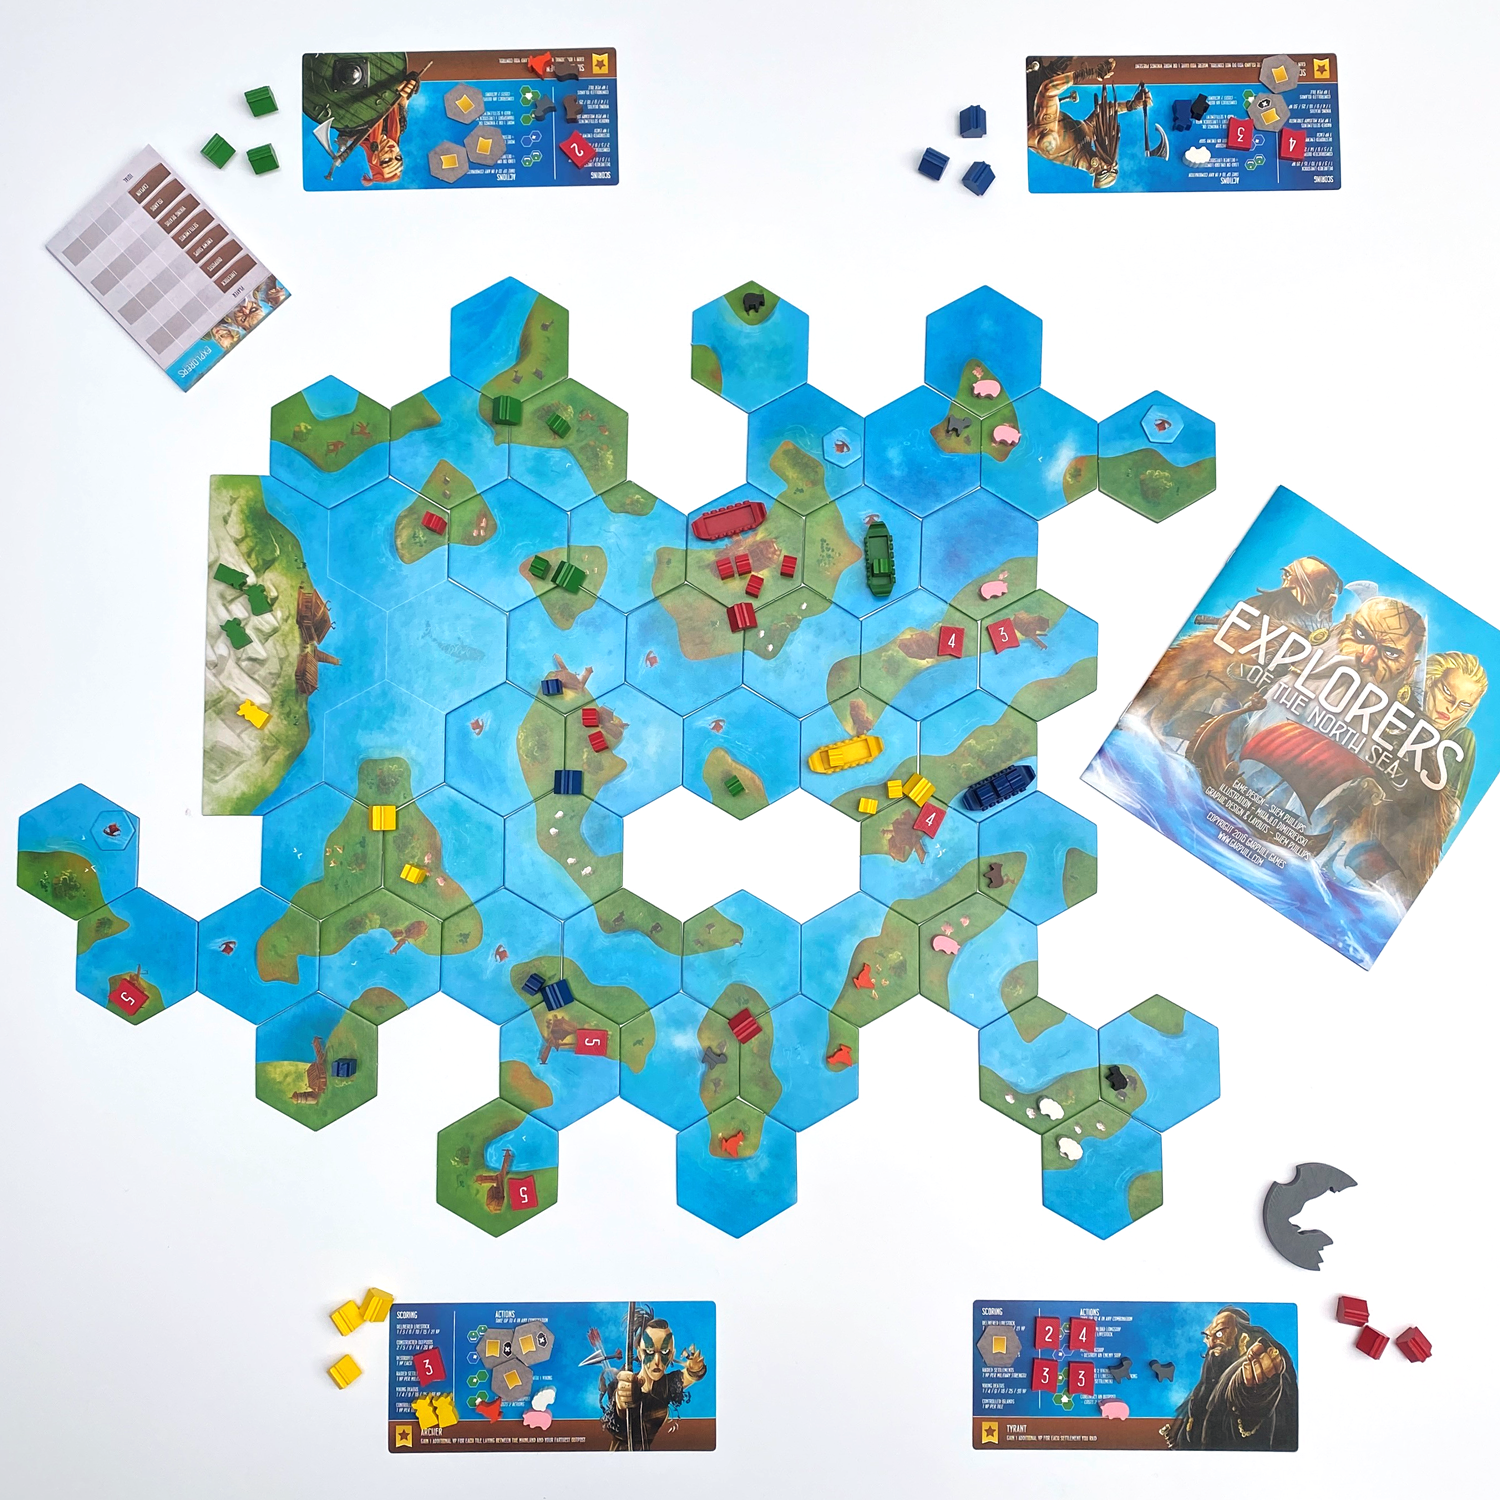 Explorers-of-the-North-Sea-Review-Game-Board-Top-Down